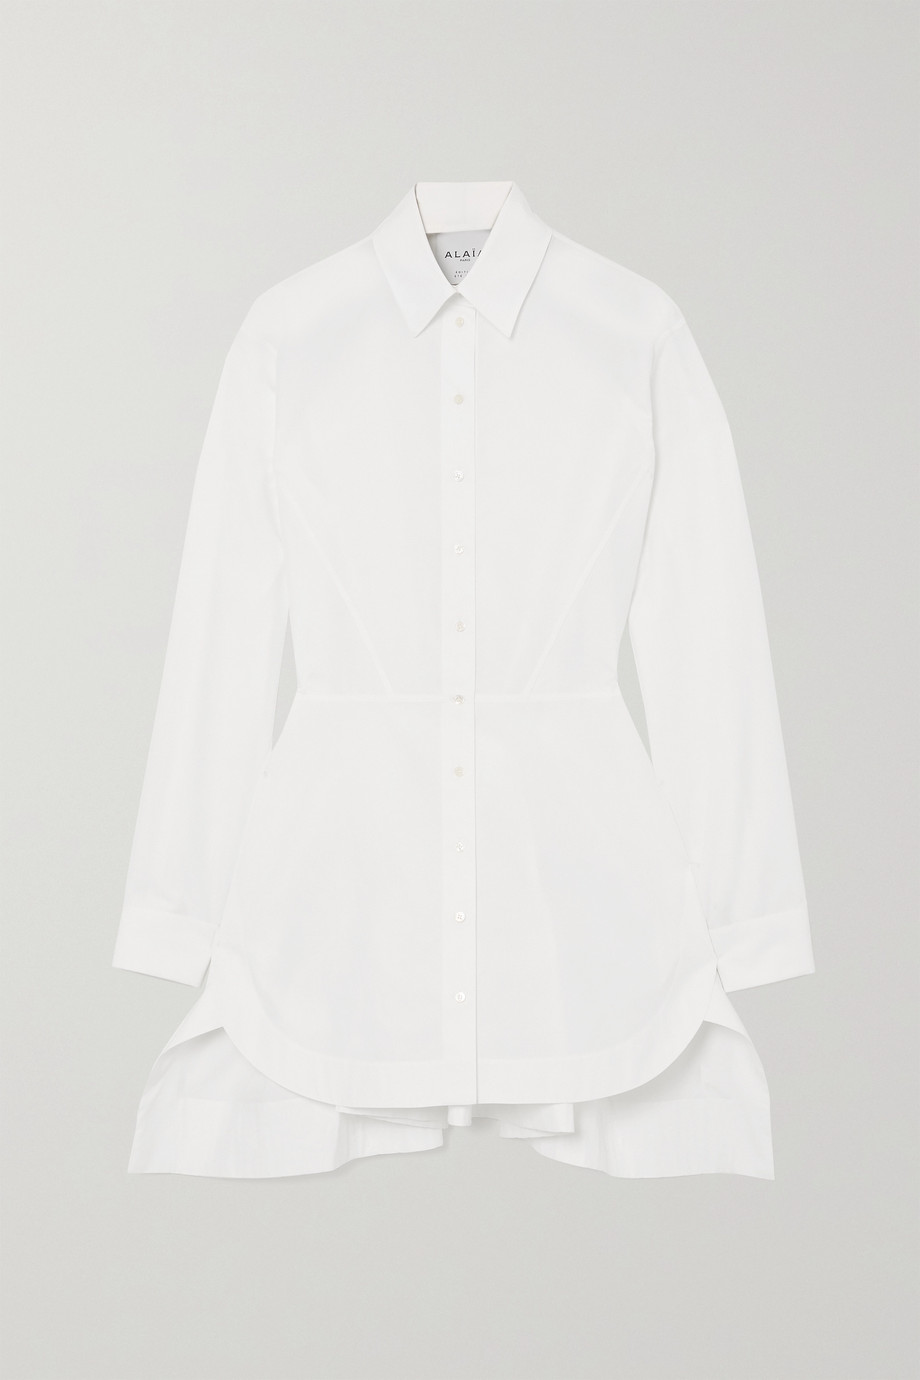 ALAÏA Editions cotton-poplin shirt